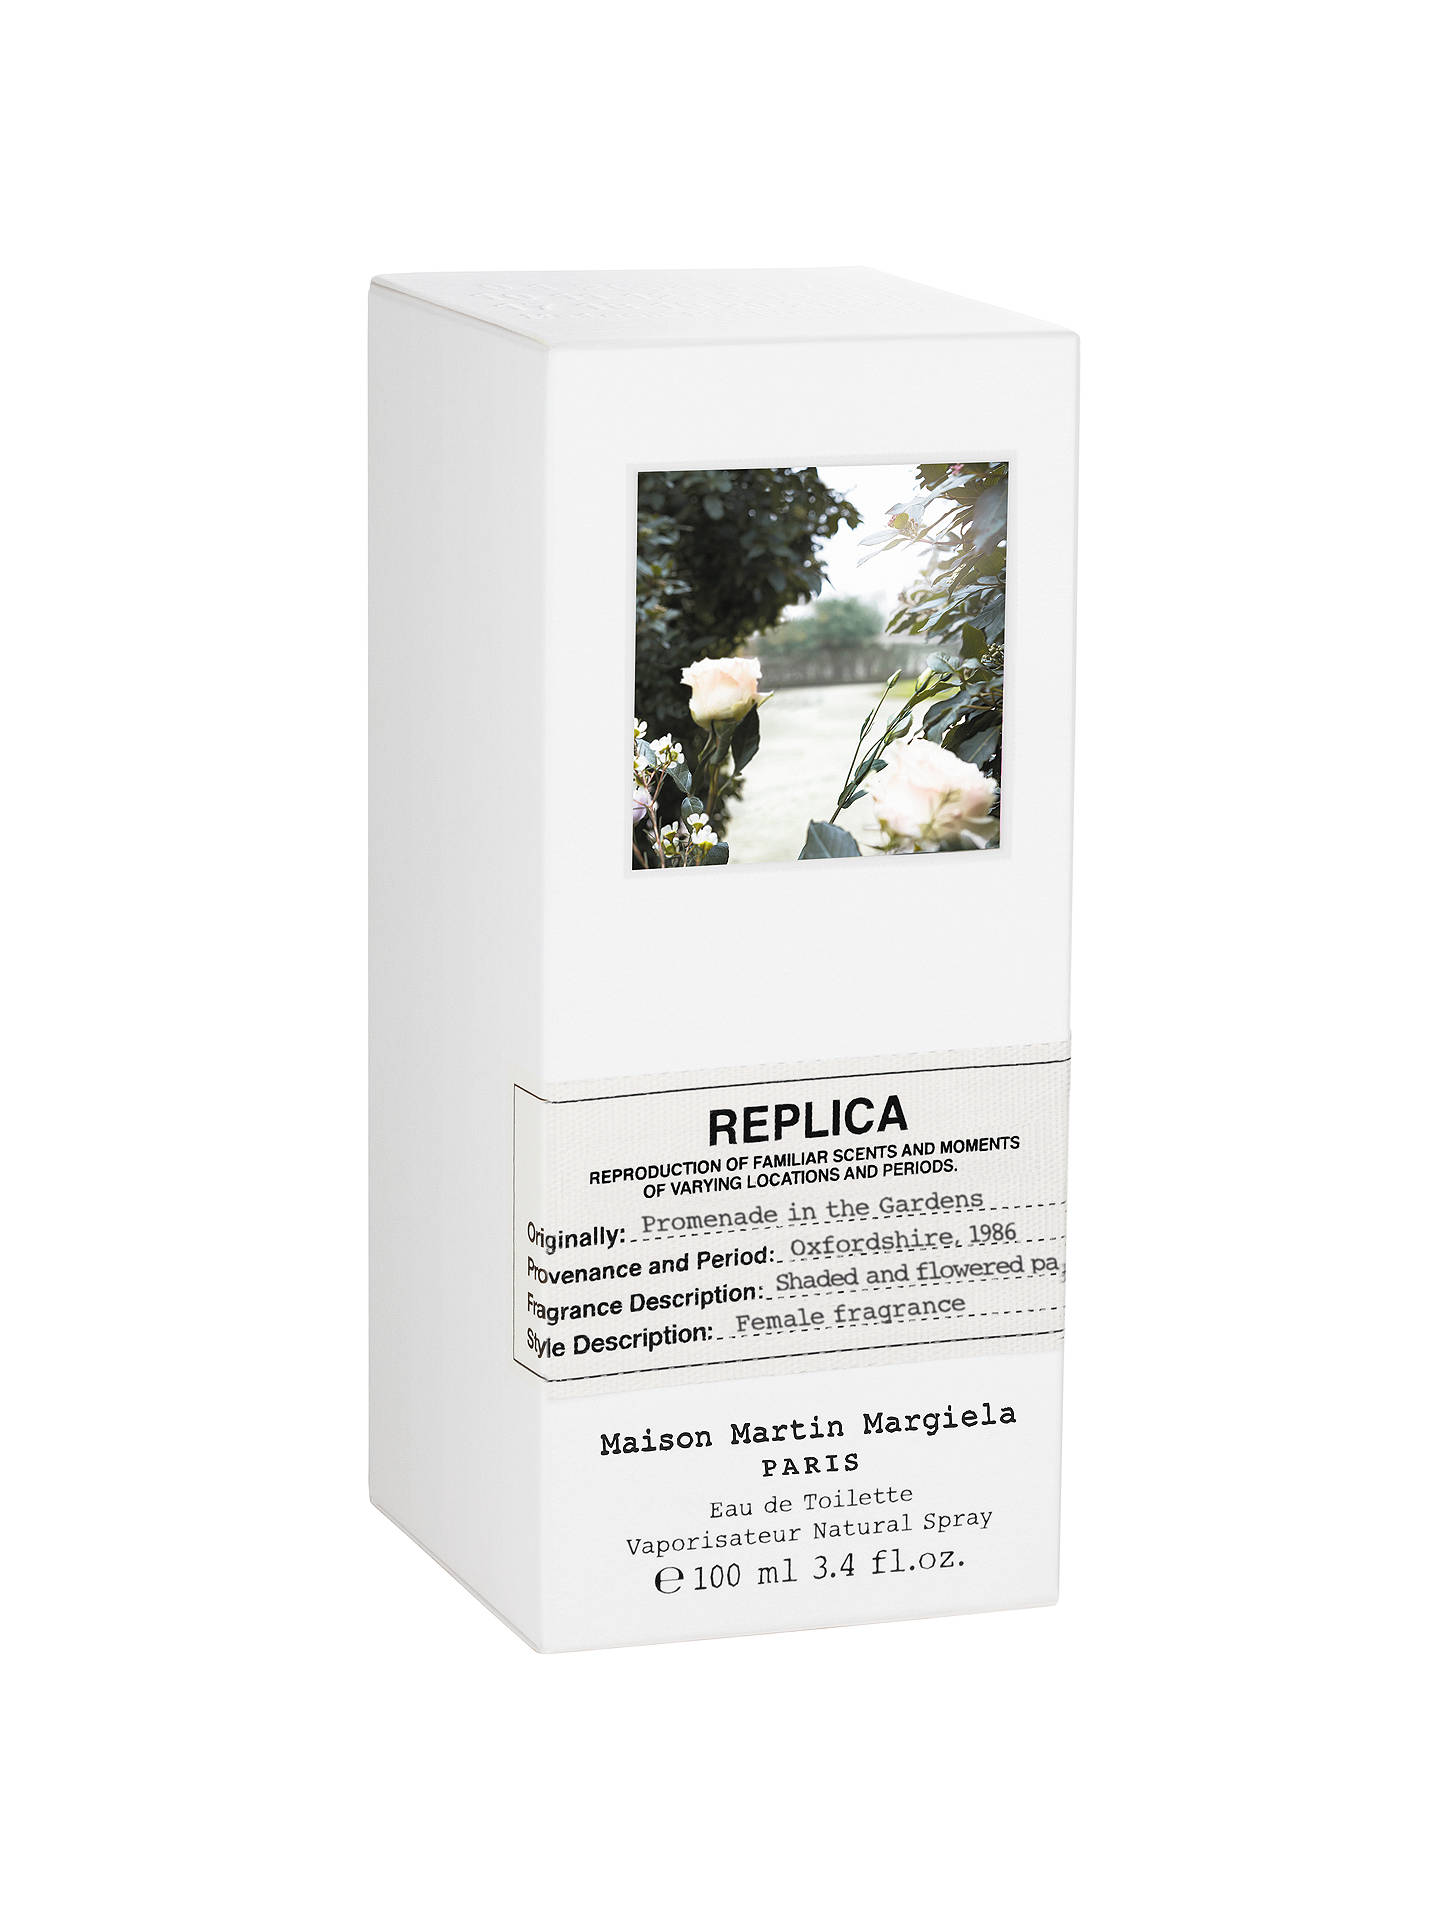 Buy Maison Margiela Replica Promenade In the Gardens Eau de Toilette, 100ml Online at johnlewis.com